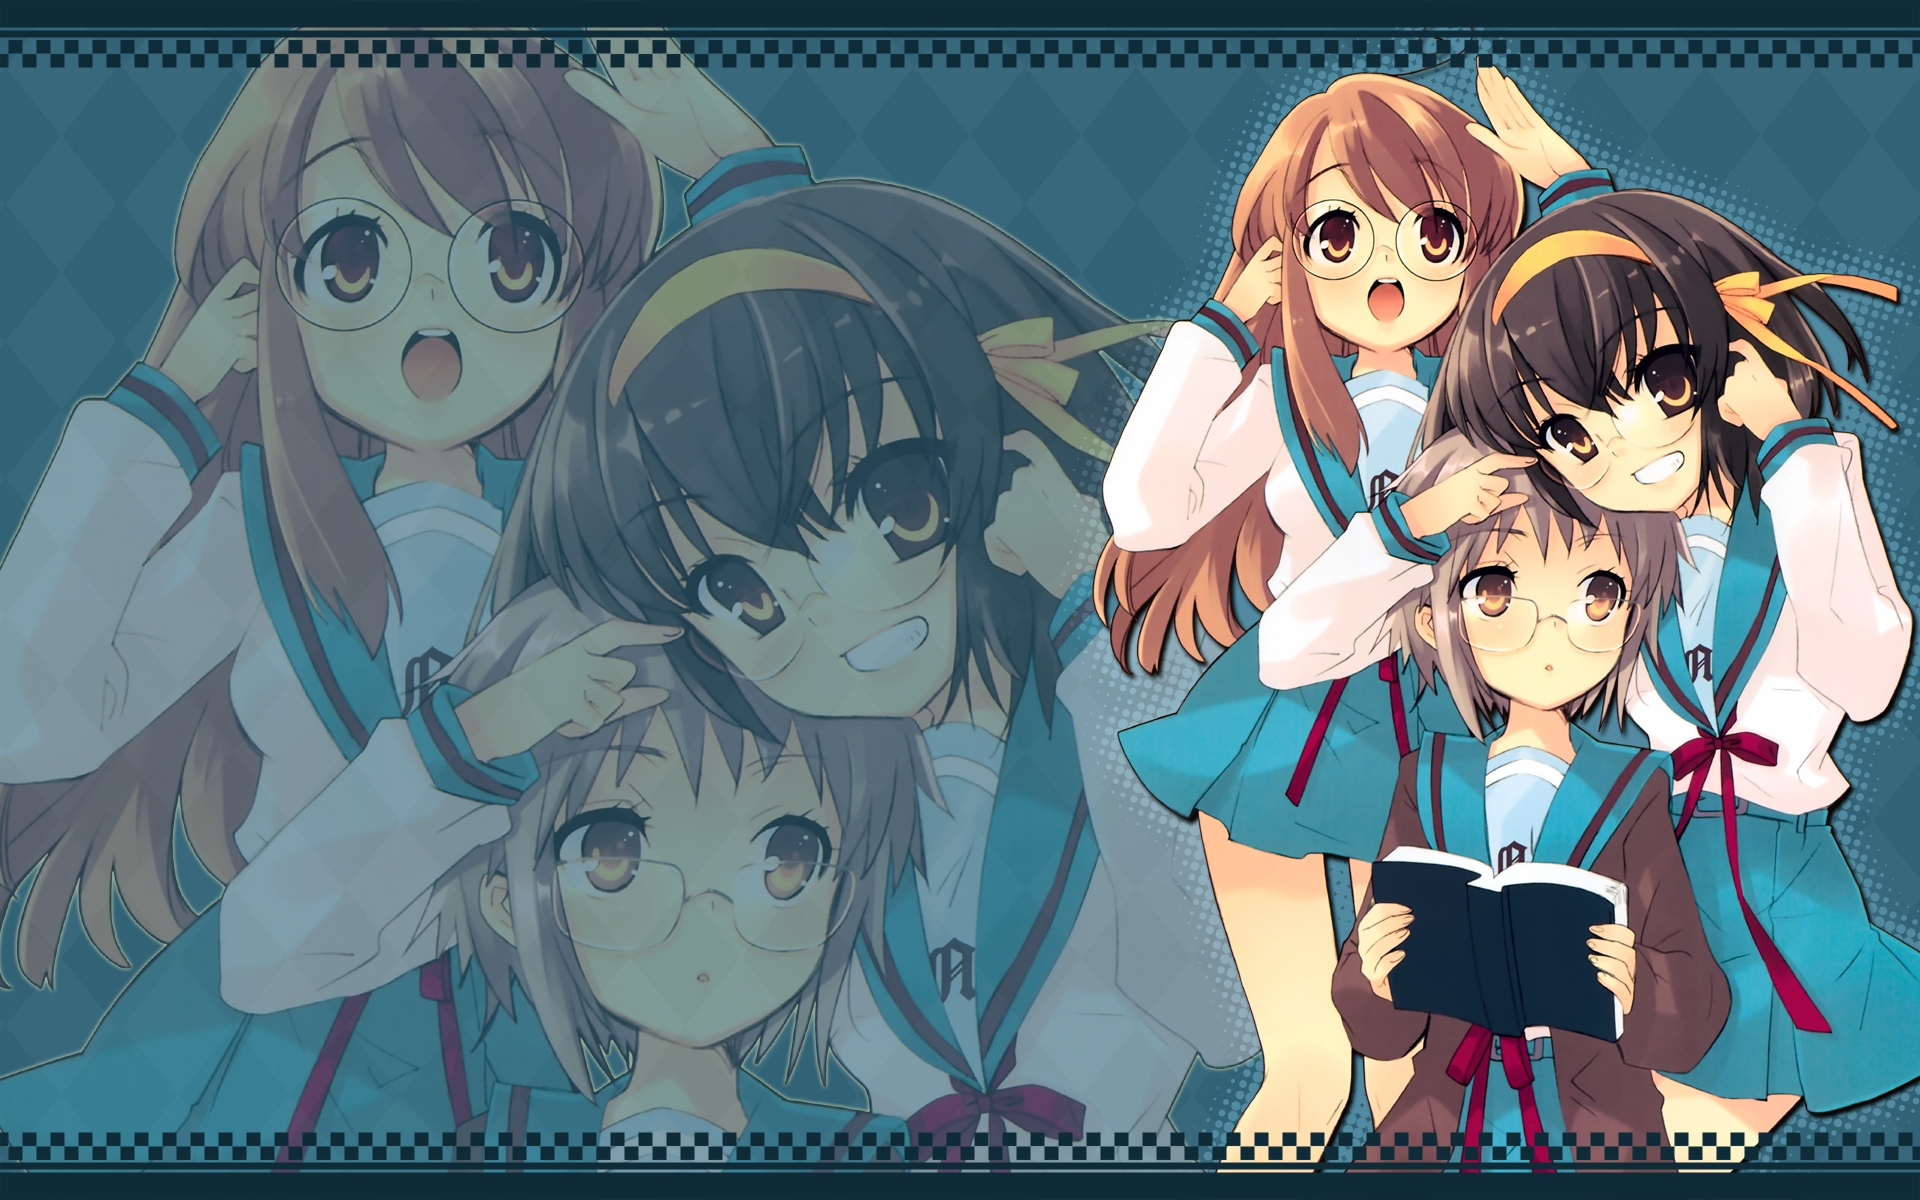 The Melancholy of Haruhi Suzumiya picture 7181_the_melancholy_of_haruhi_suzumiya